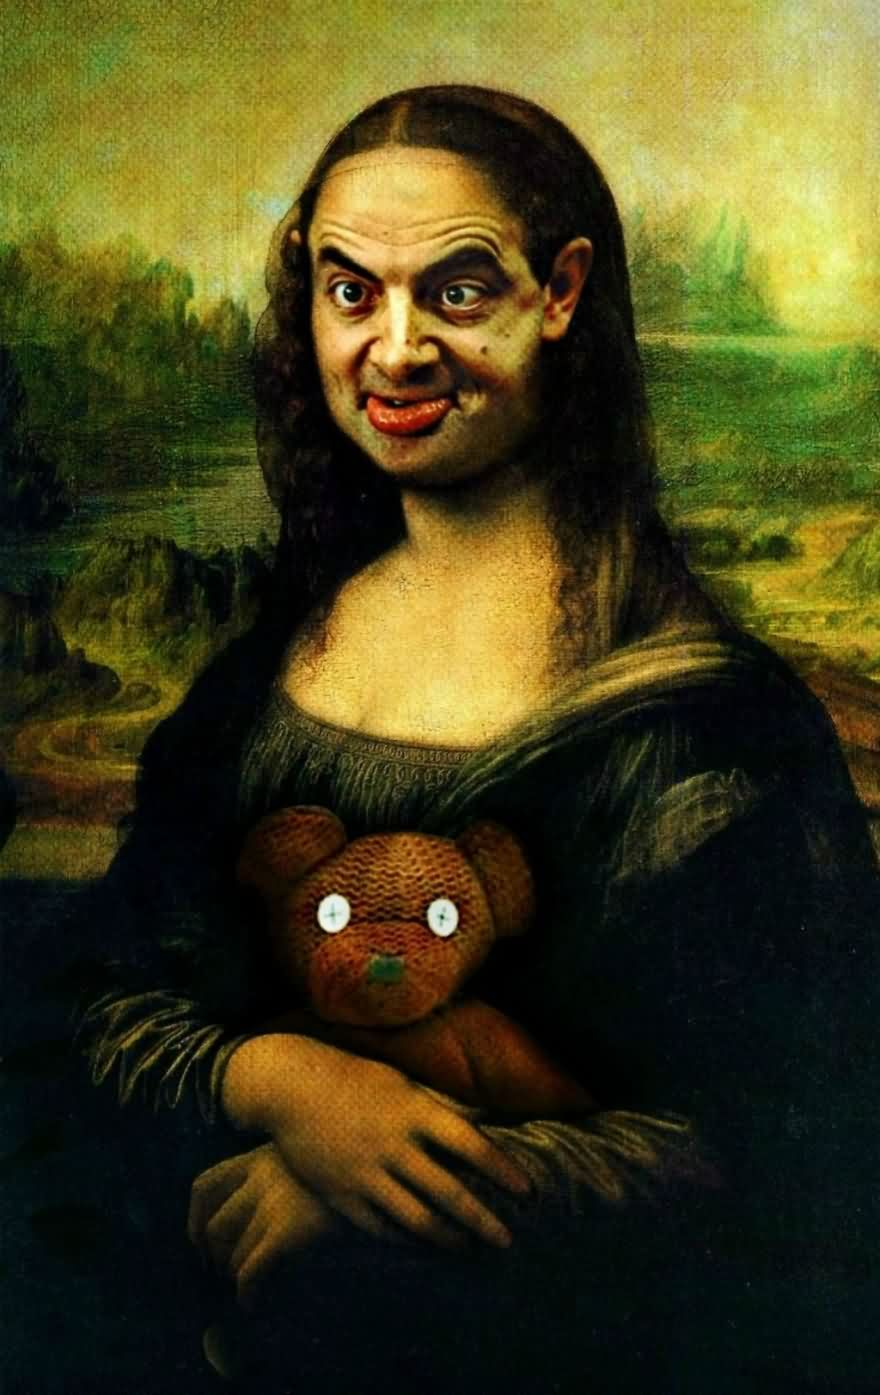 Mr Bean Funny Photoshop Images 18